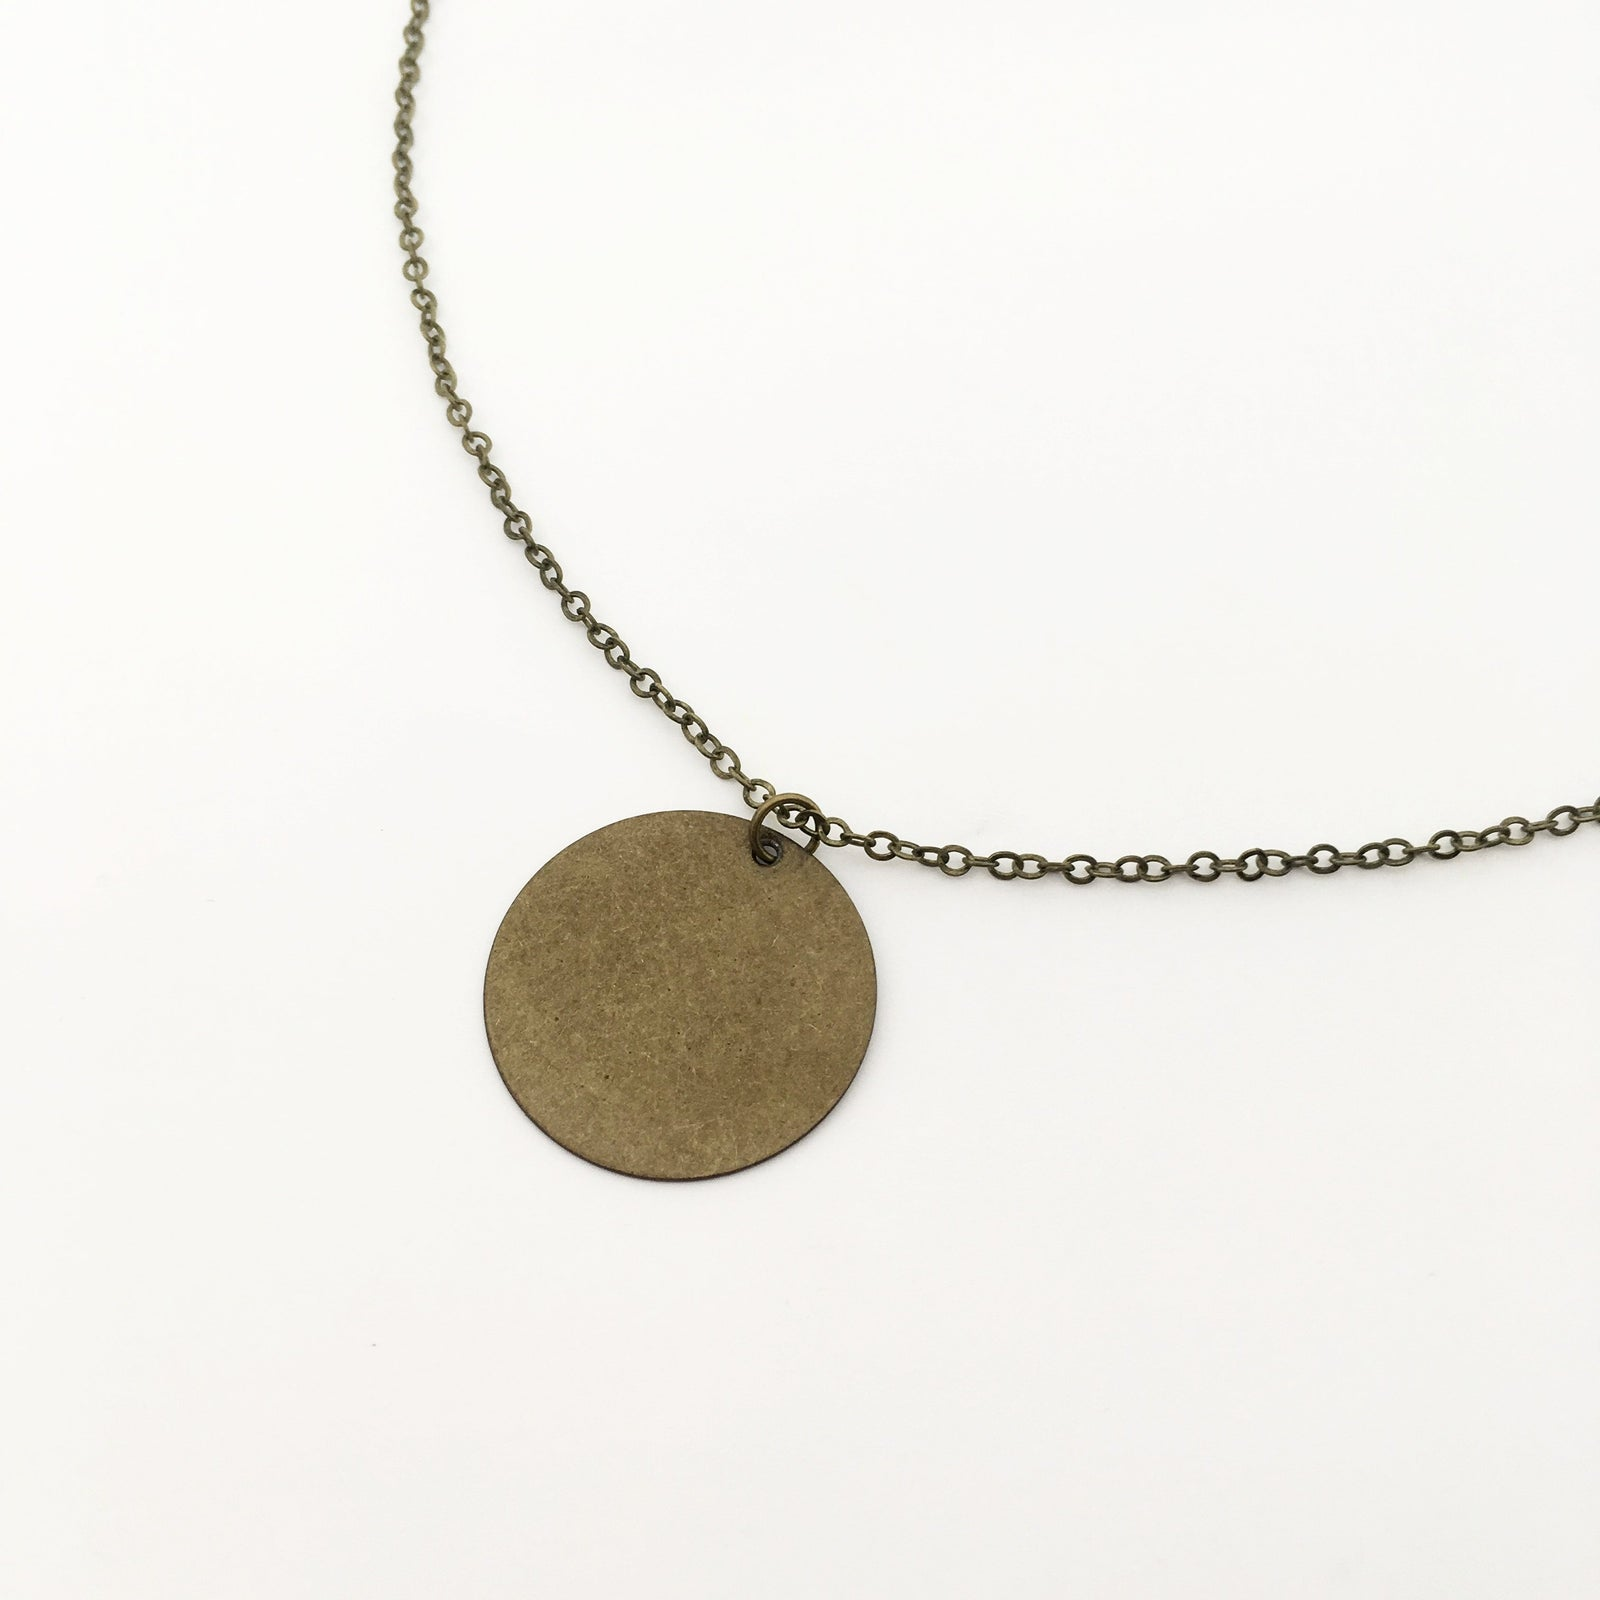 LARGE BRONZE DISK NECKLACE